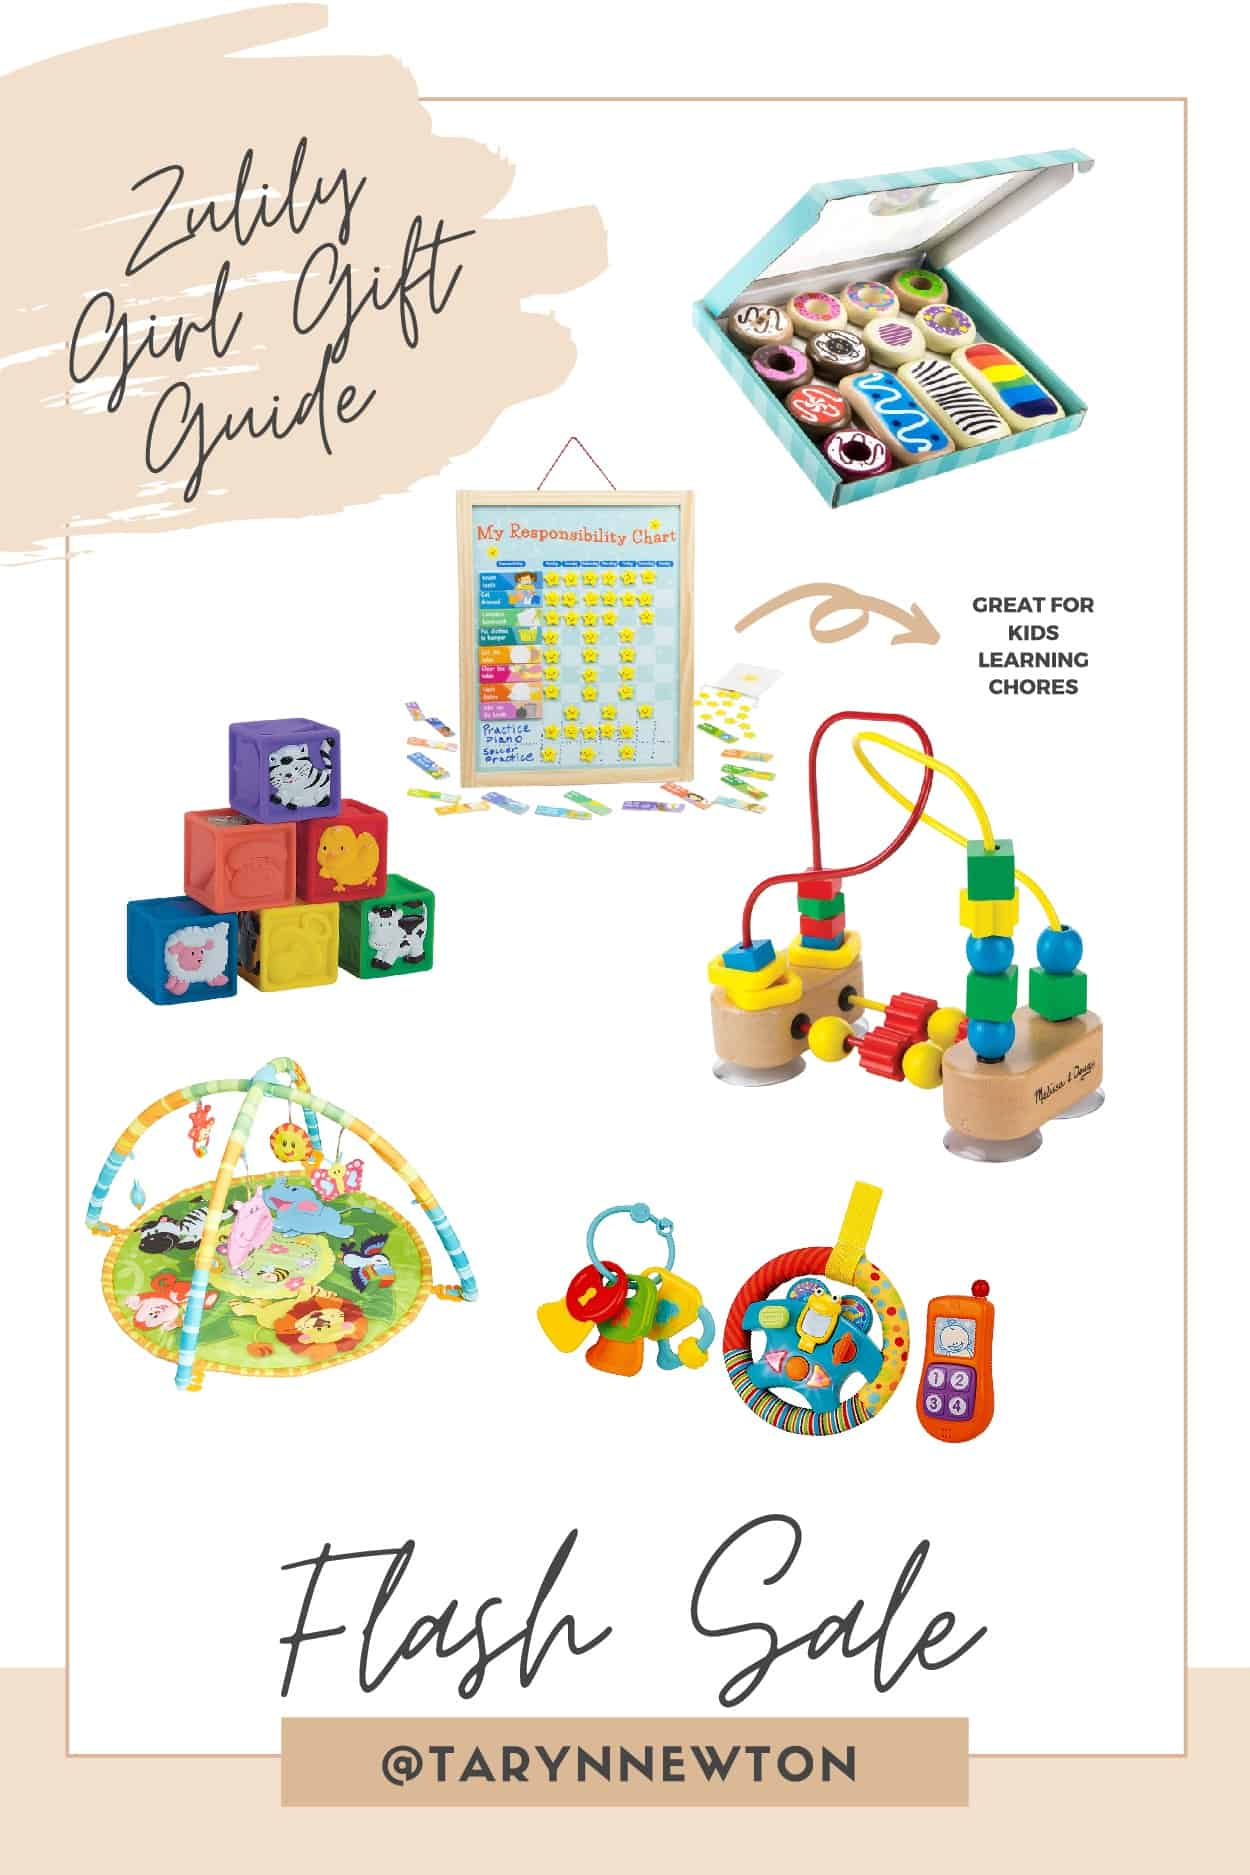 Christmas Gift Guide by poplar Dallas life and style blog, Glamorous Versatility: collage image of a play mat, squishy blocks, wooden beed toy, wooden play food, wooden beed toy, and baby car toy set